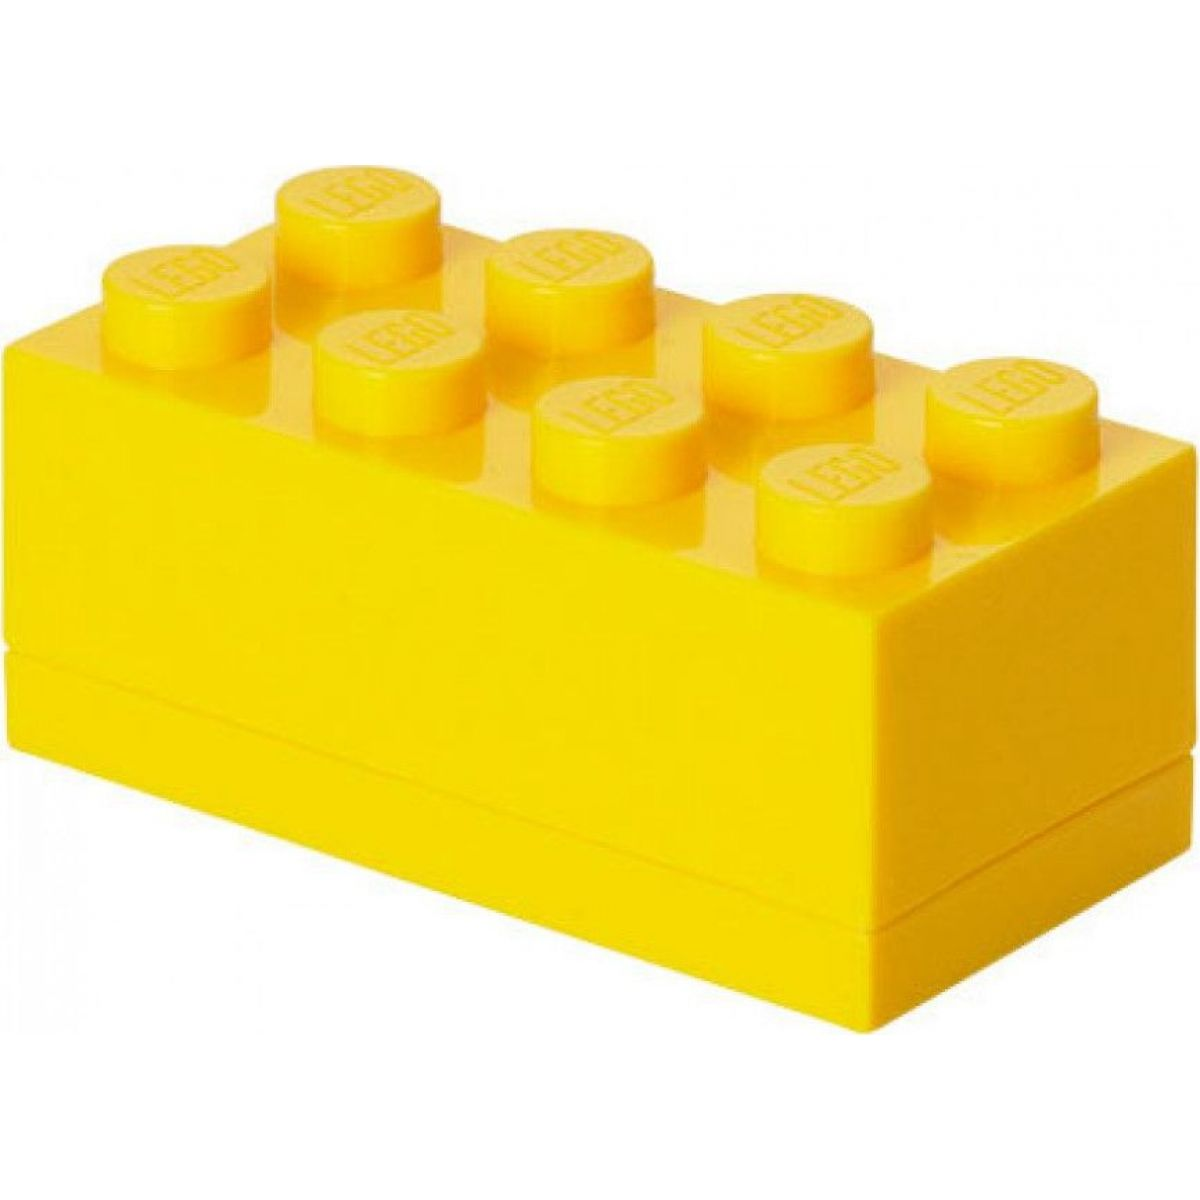 LEGO Mini Box 4,6x9,3x4,3cm Žlutá